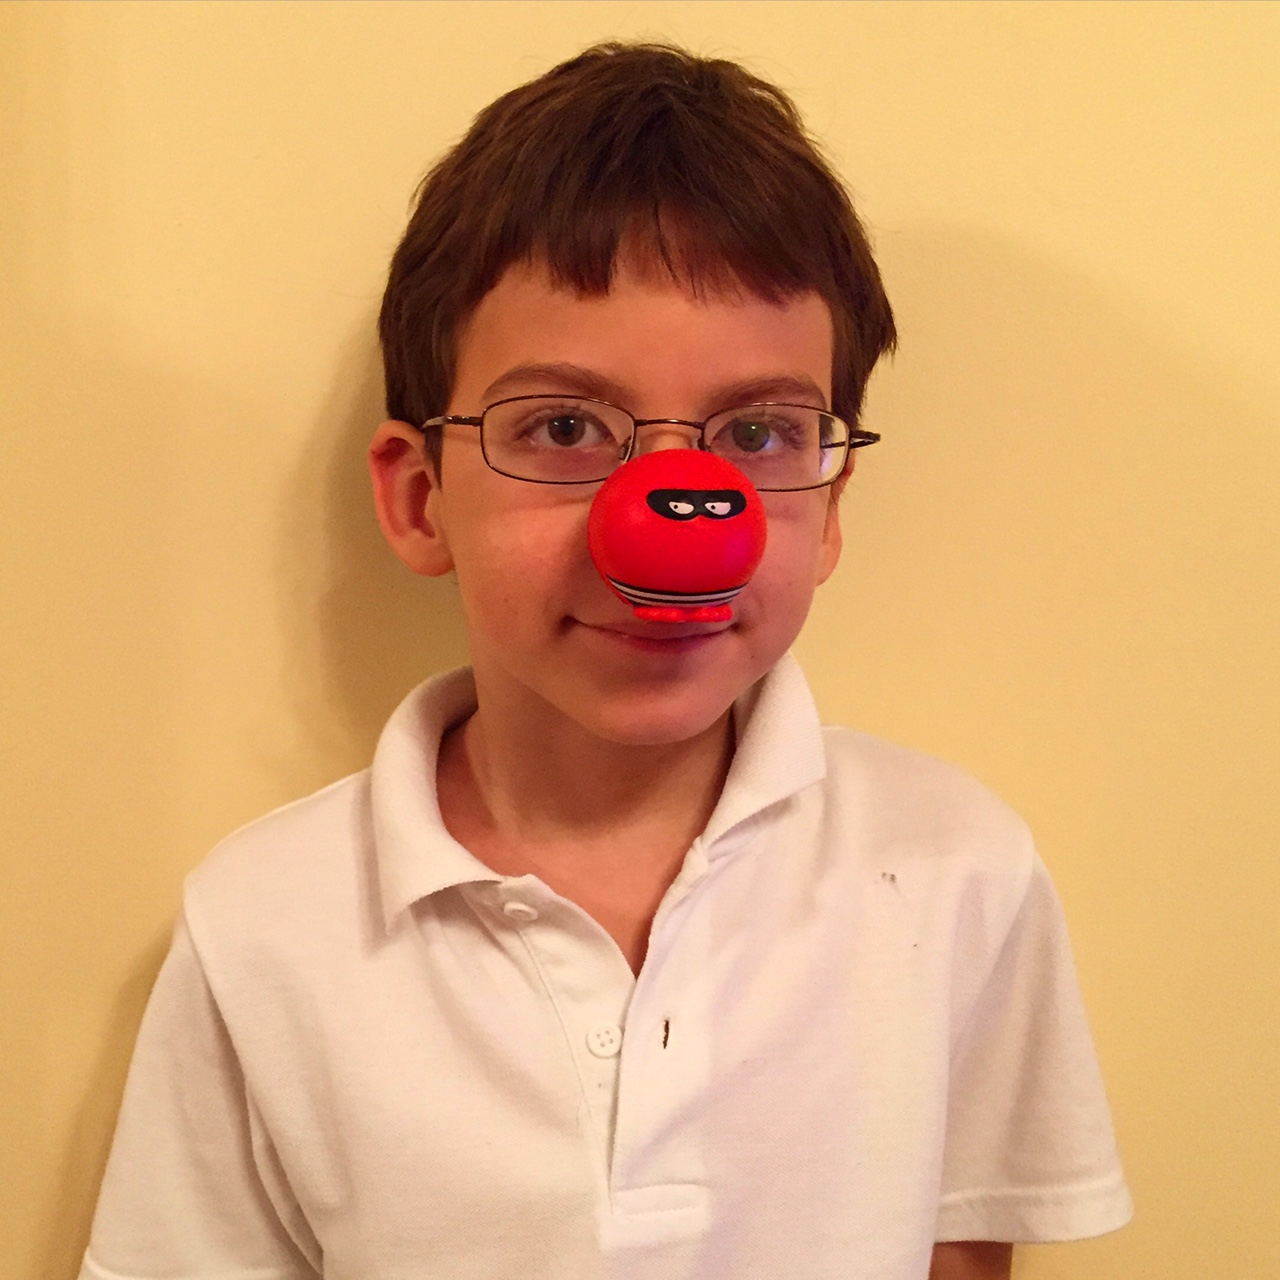 Isaac Red Nose Day